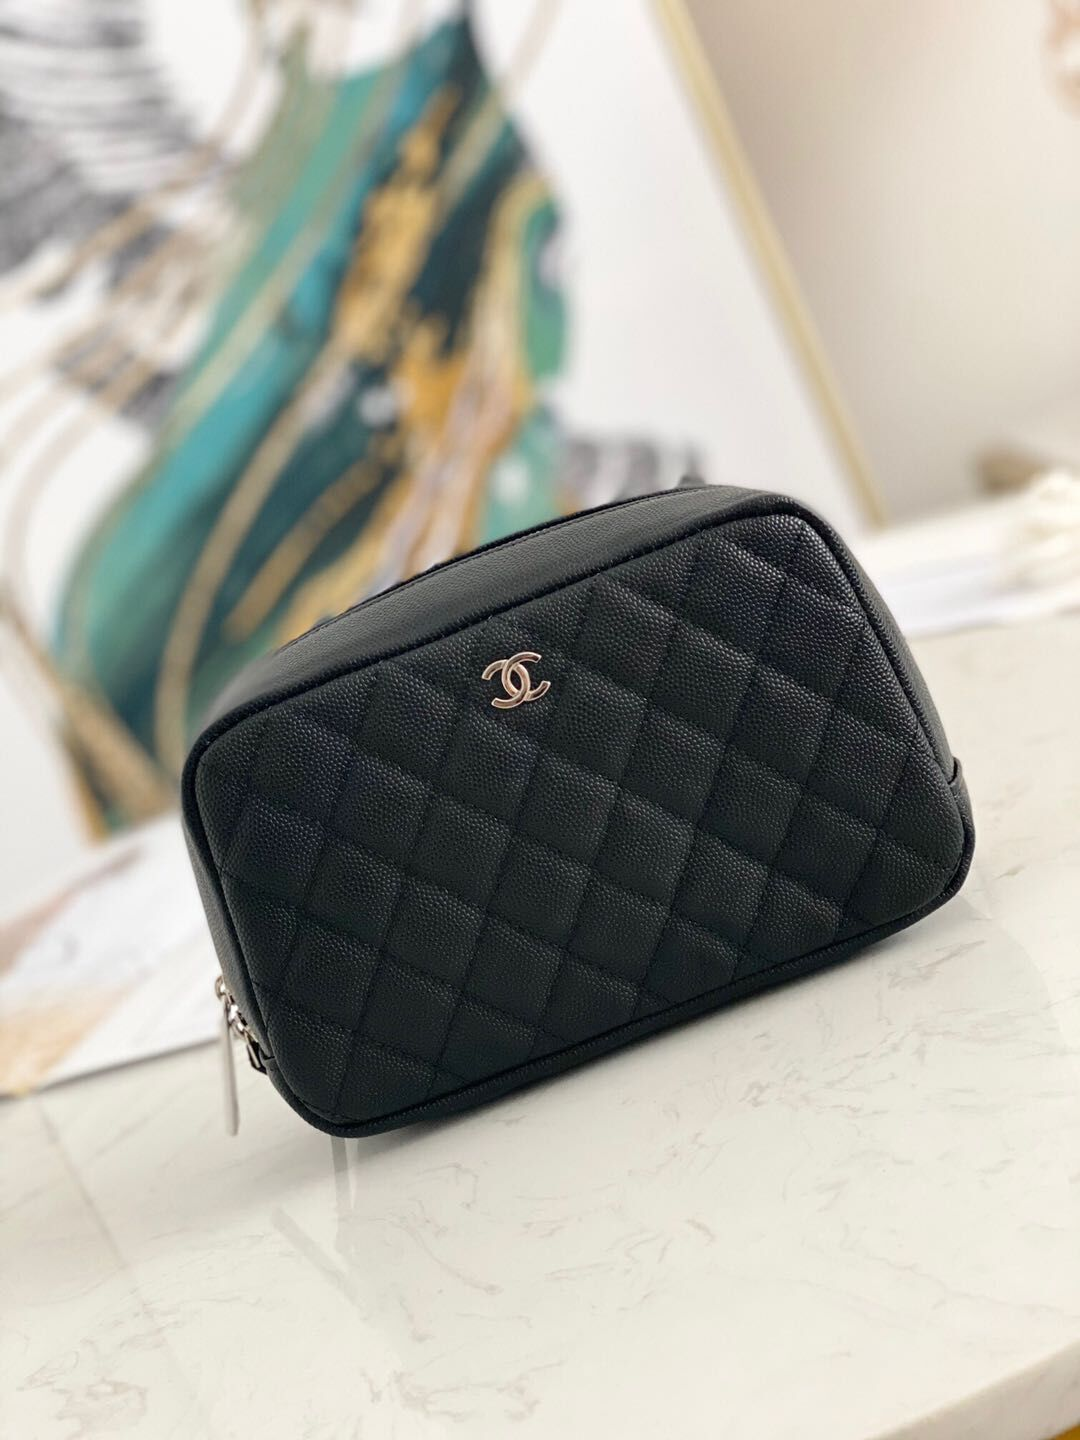 Chanel Caviar Quilted Curvy Pouch Cosmetic Case 220597 Black